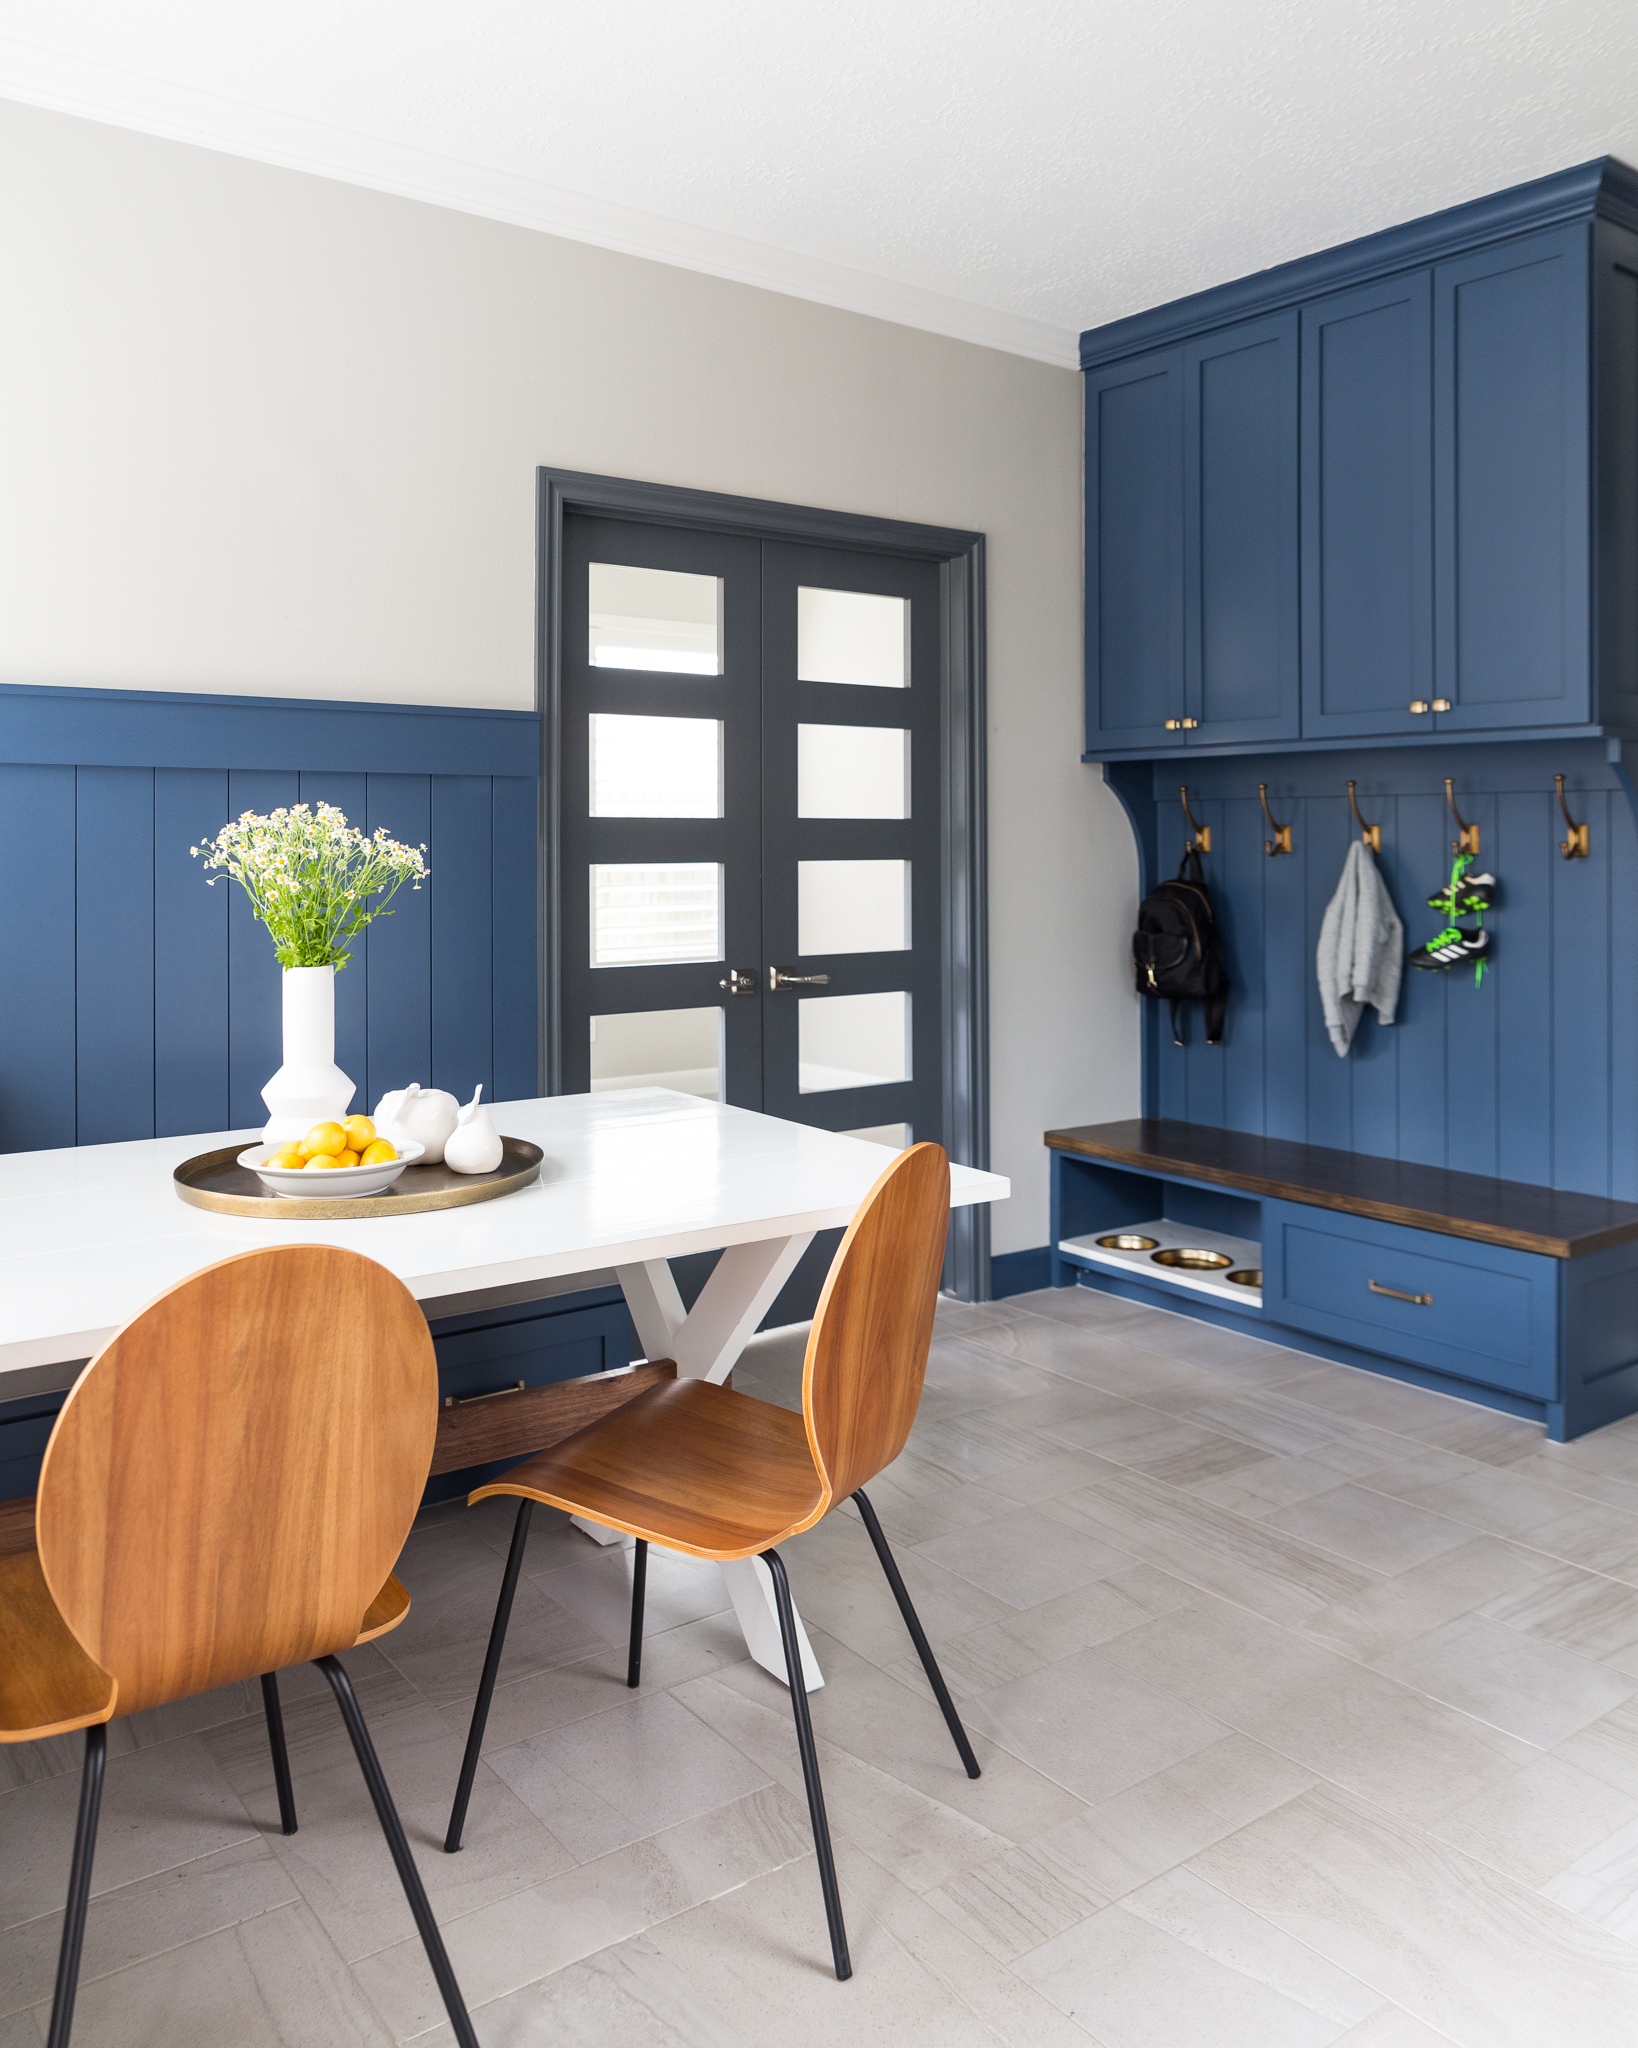 BEFORE AND AFTER - A navy and white kitchen remodel w/ mudroom bench, dog feeding station, breakfast nook | Carla Aston, Designer | Colleen Scott, Photographer #mudroom #dogbowl #bench #cabinetry #breakfastroom